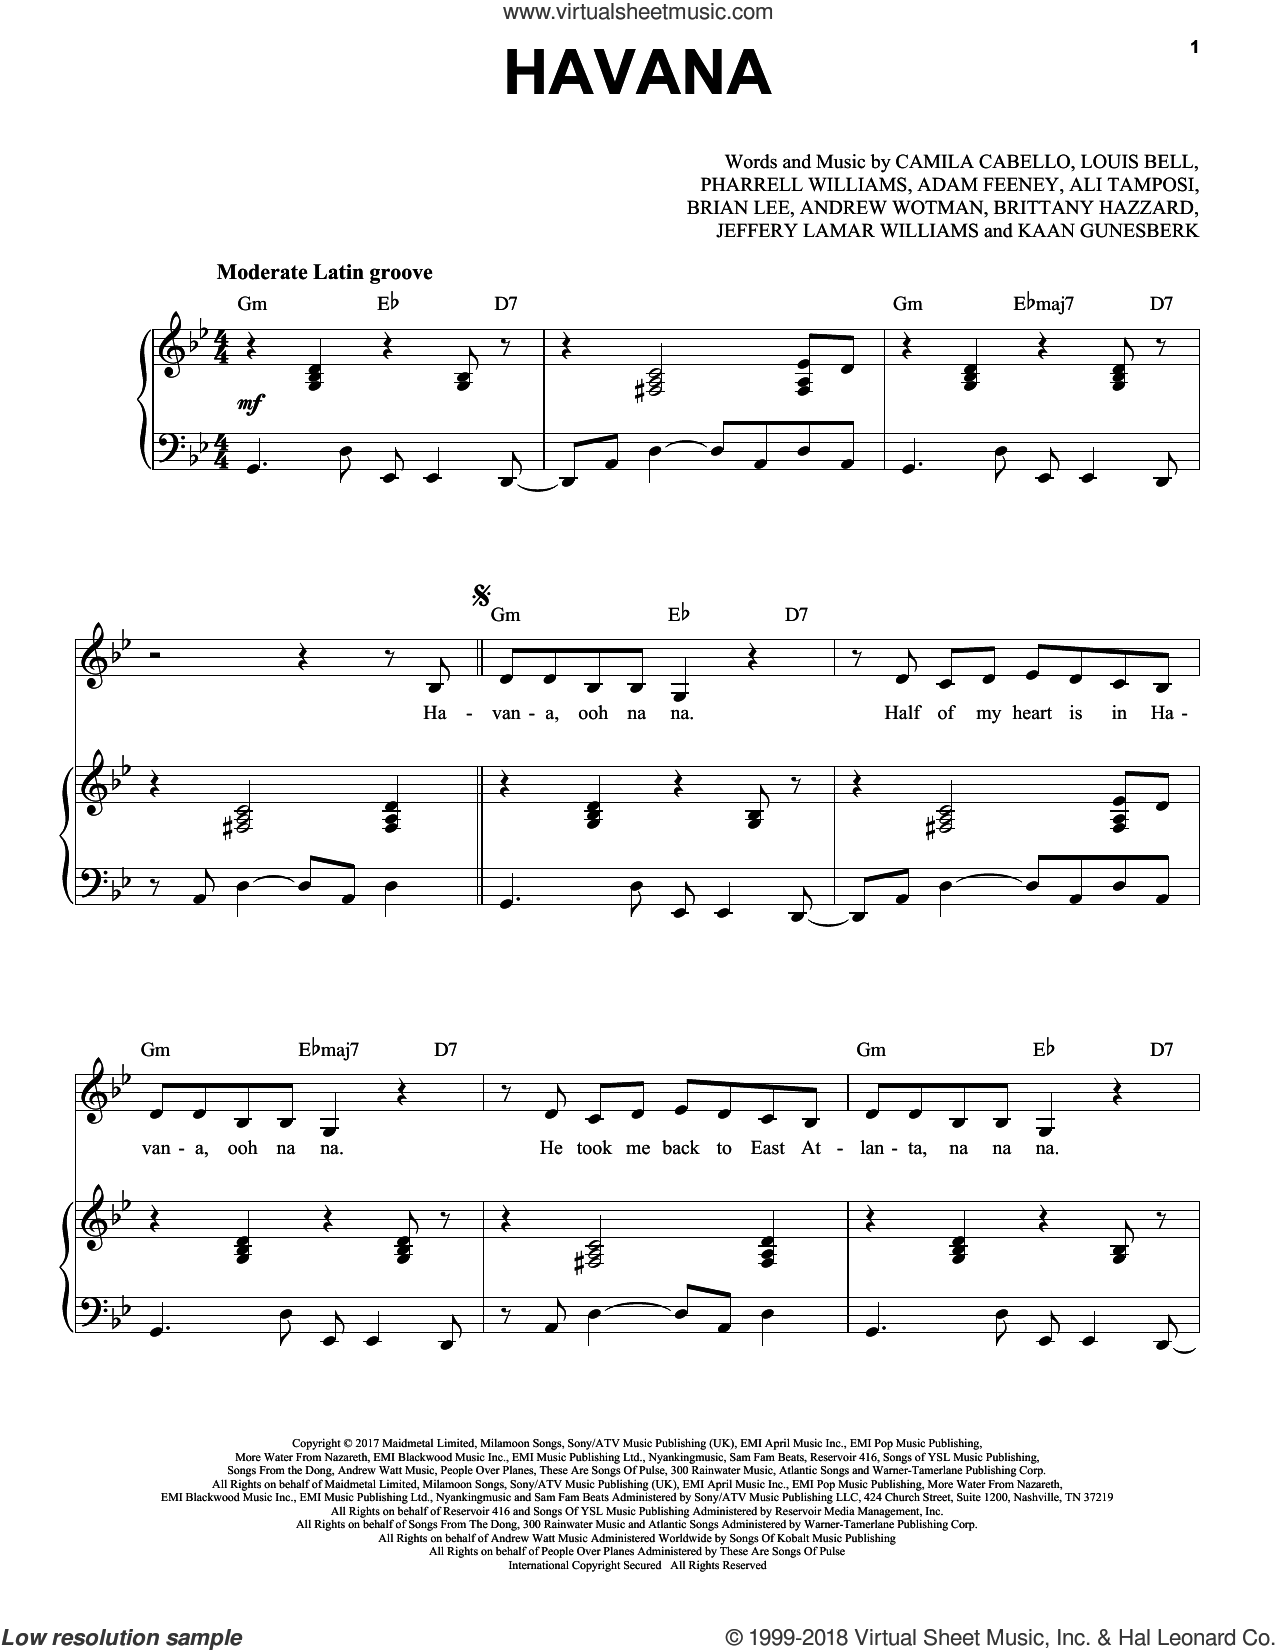 Havana (feat. Young Thug) sheet music for voice and piano by Camila Cabello, Adam Feeney, Ali Tamposi, Andrew Wotman, Brian Lee, Brittany Hazzard, Jeffery Lamar Williams, Kaan Gunesberk, Louis Bell and Pharrell Williams, intermediate skill level